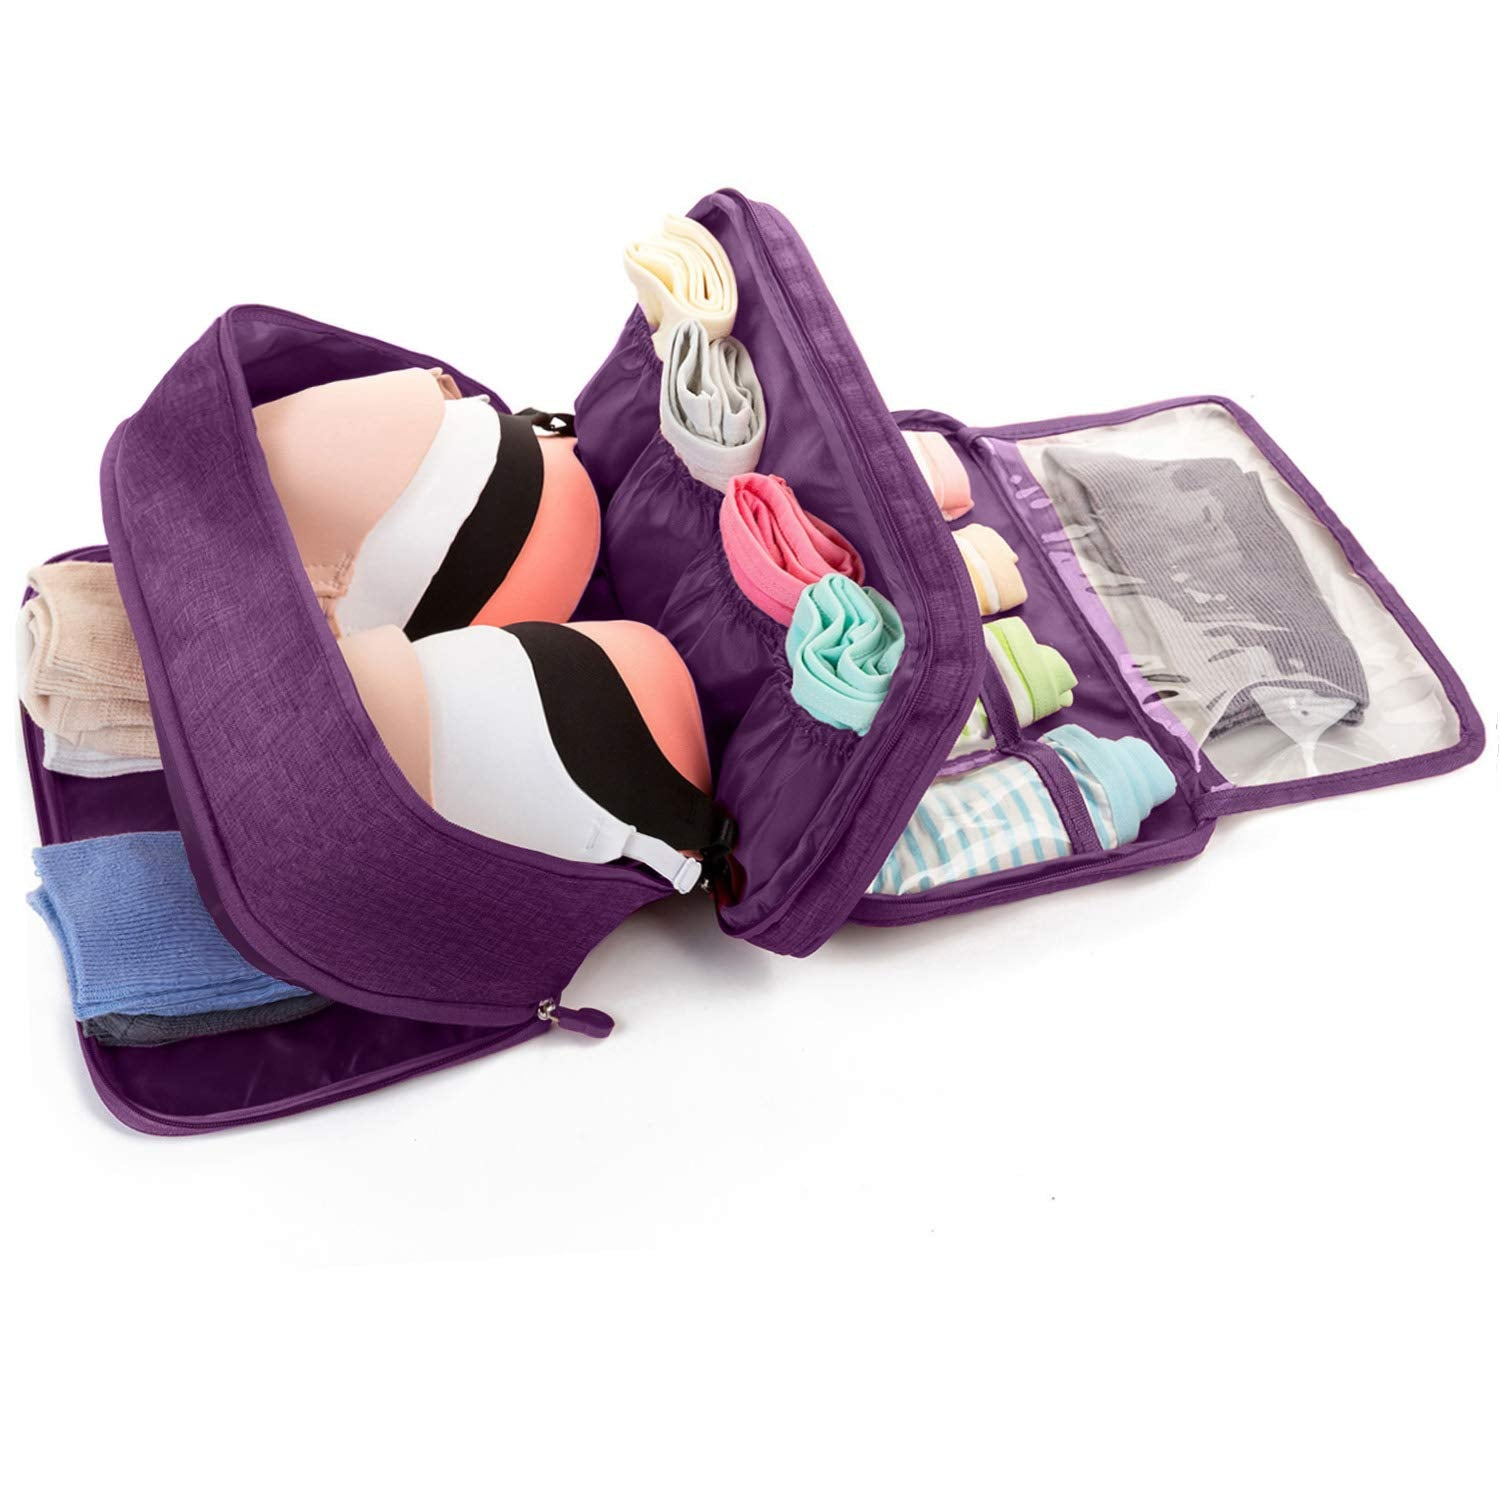 BeautyFX Underwear Toiletries Organiser Travel Bag | Monthly Madness